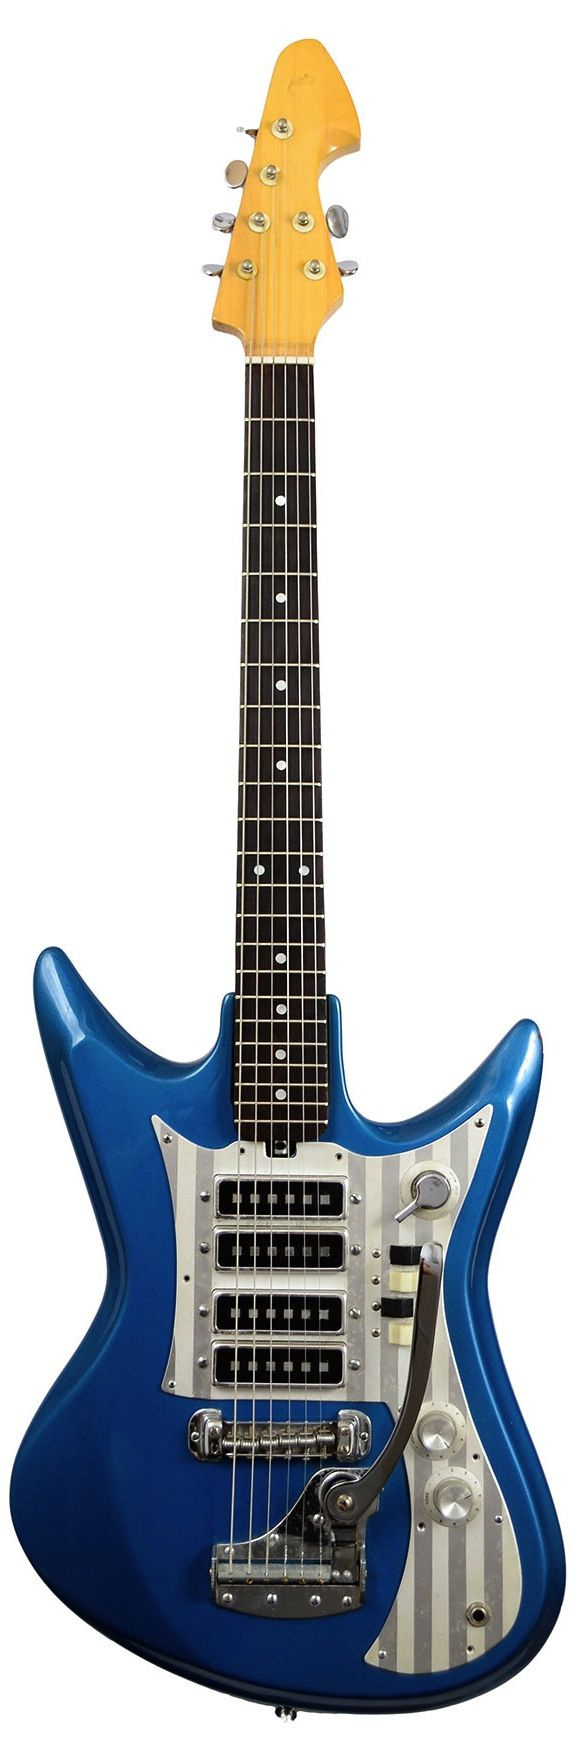 '60 Teisco Del Ray Guitar - The Teisco brand name stands for 'Tokyo Electric Instrument and Sound Company'. Teisco was founded in 1946 by renowned Hawaiian and Spanish guitarist Atswo Kaneko, and electrical engineer Doryu Matsuda. The company was originally called Aoi Onpa Kenkyujo (roughly: Hollyhock Soundwave or Electricity Laboratories). Kawai Musical Instruments Manufacturing Co. Ltd. discontinued the Teisco brand name for guitars in 1969 (1977 in Japan).